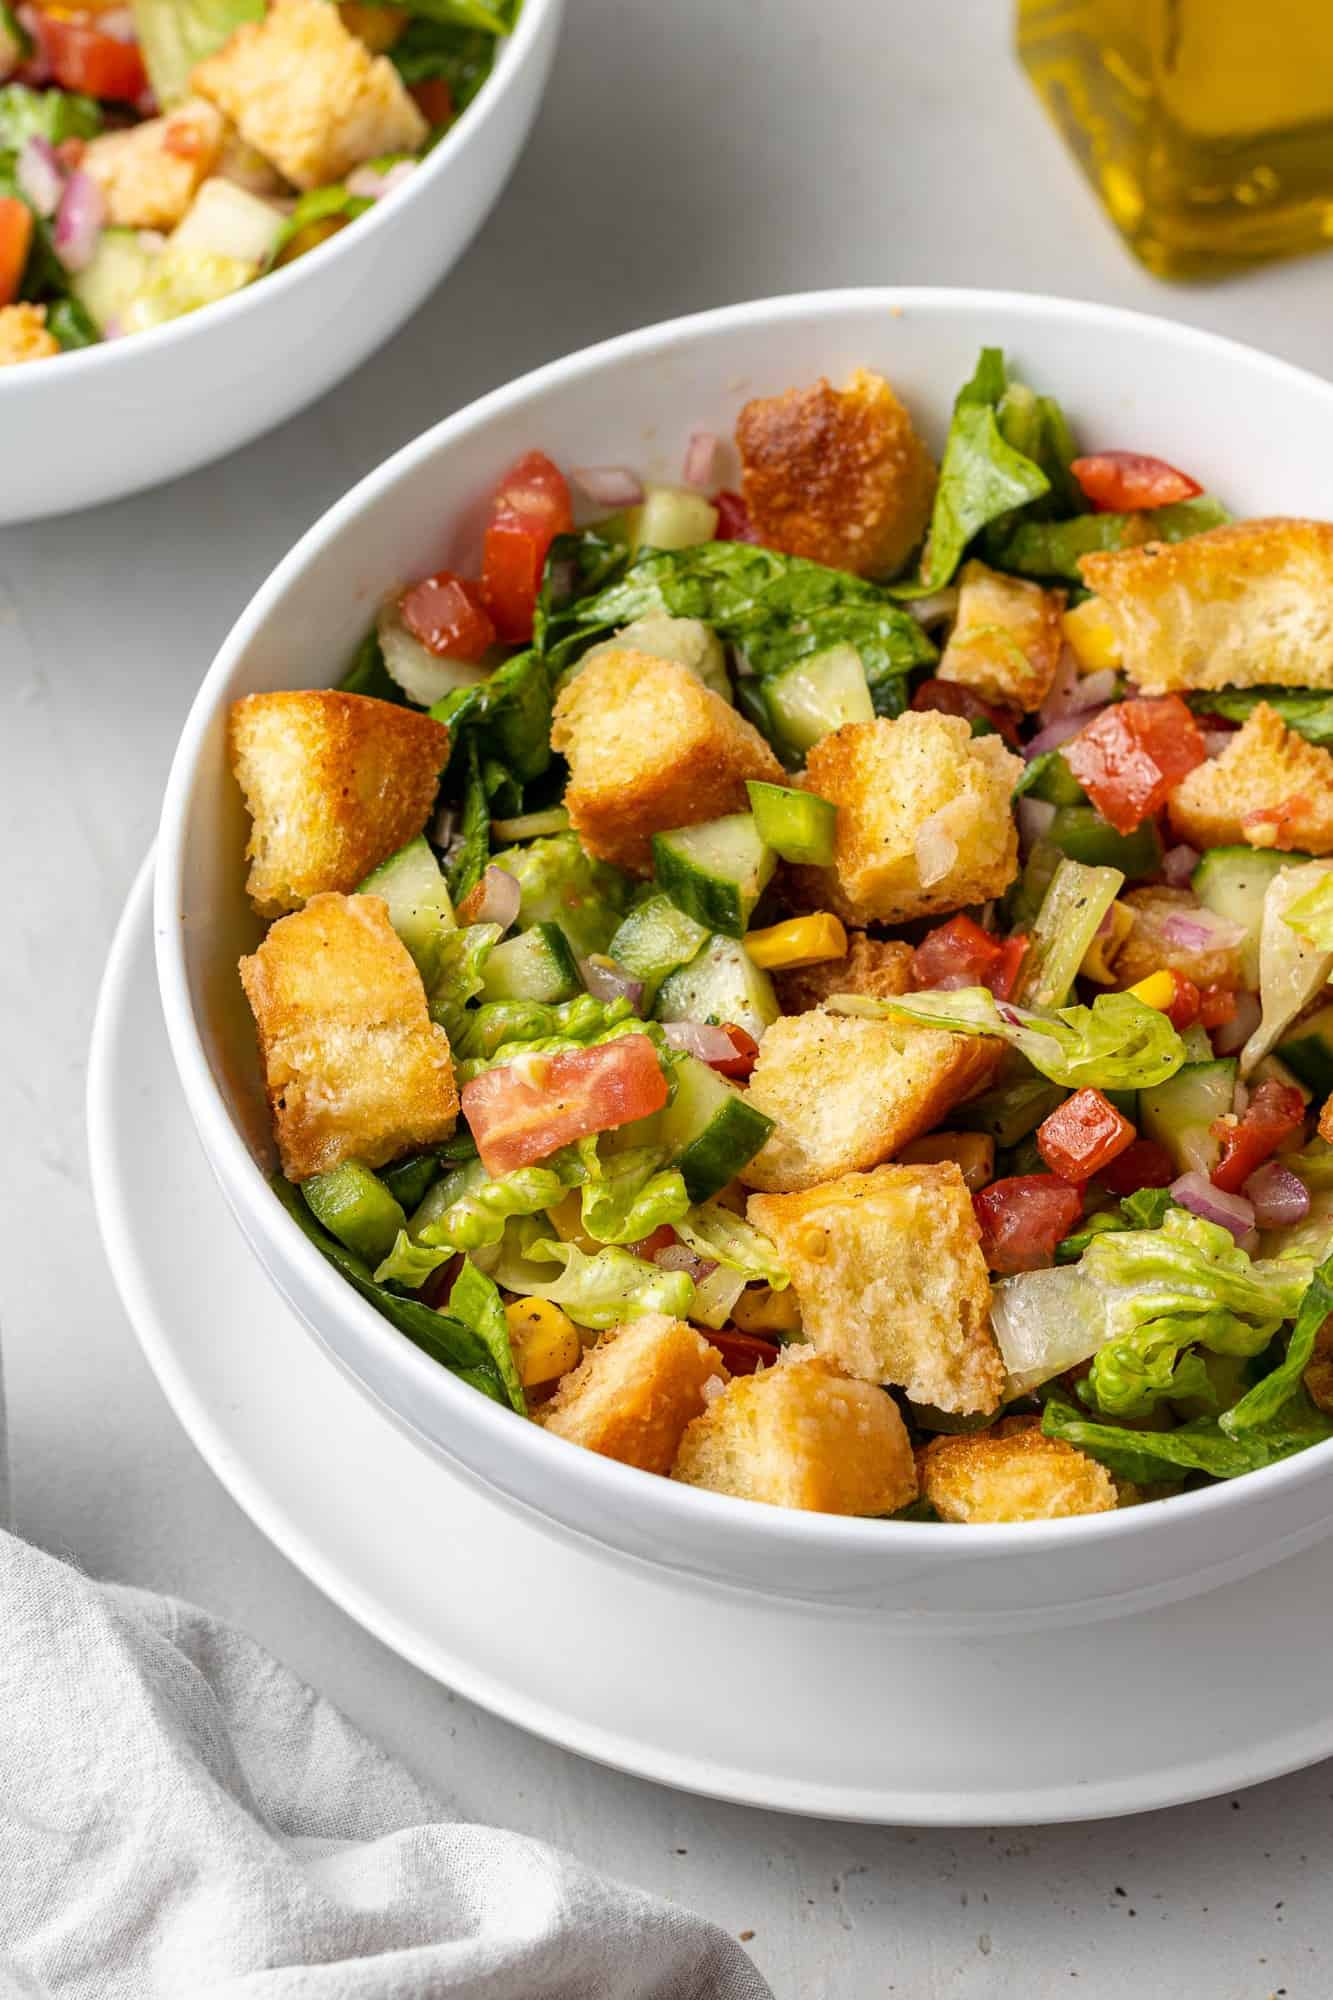 White bowl with chipped salad in it, including corn, tomatoes, peppers and croutons.